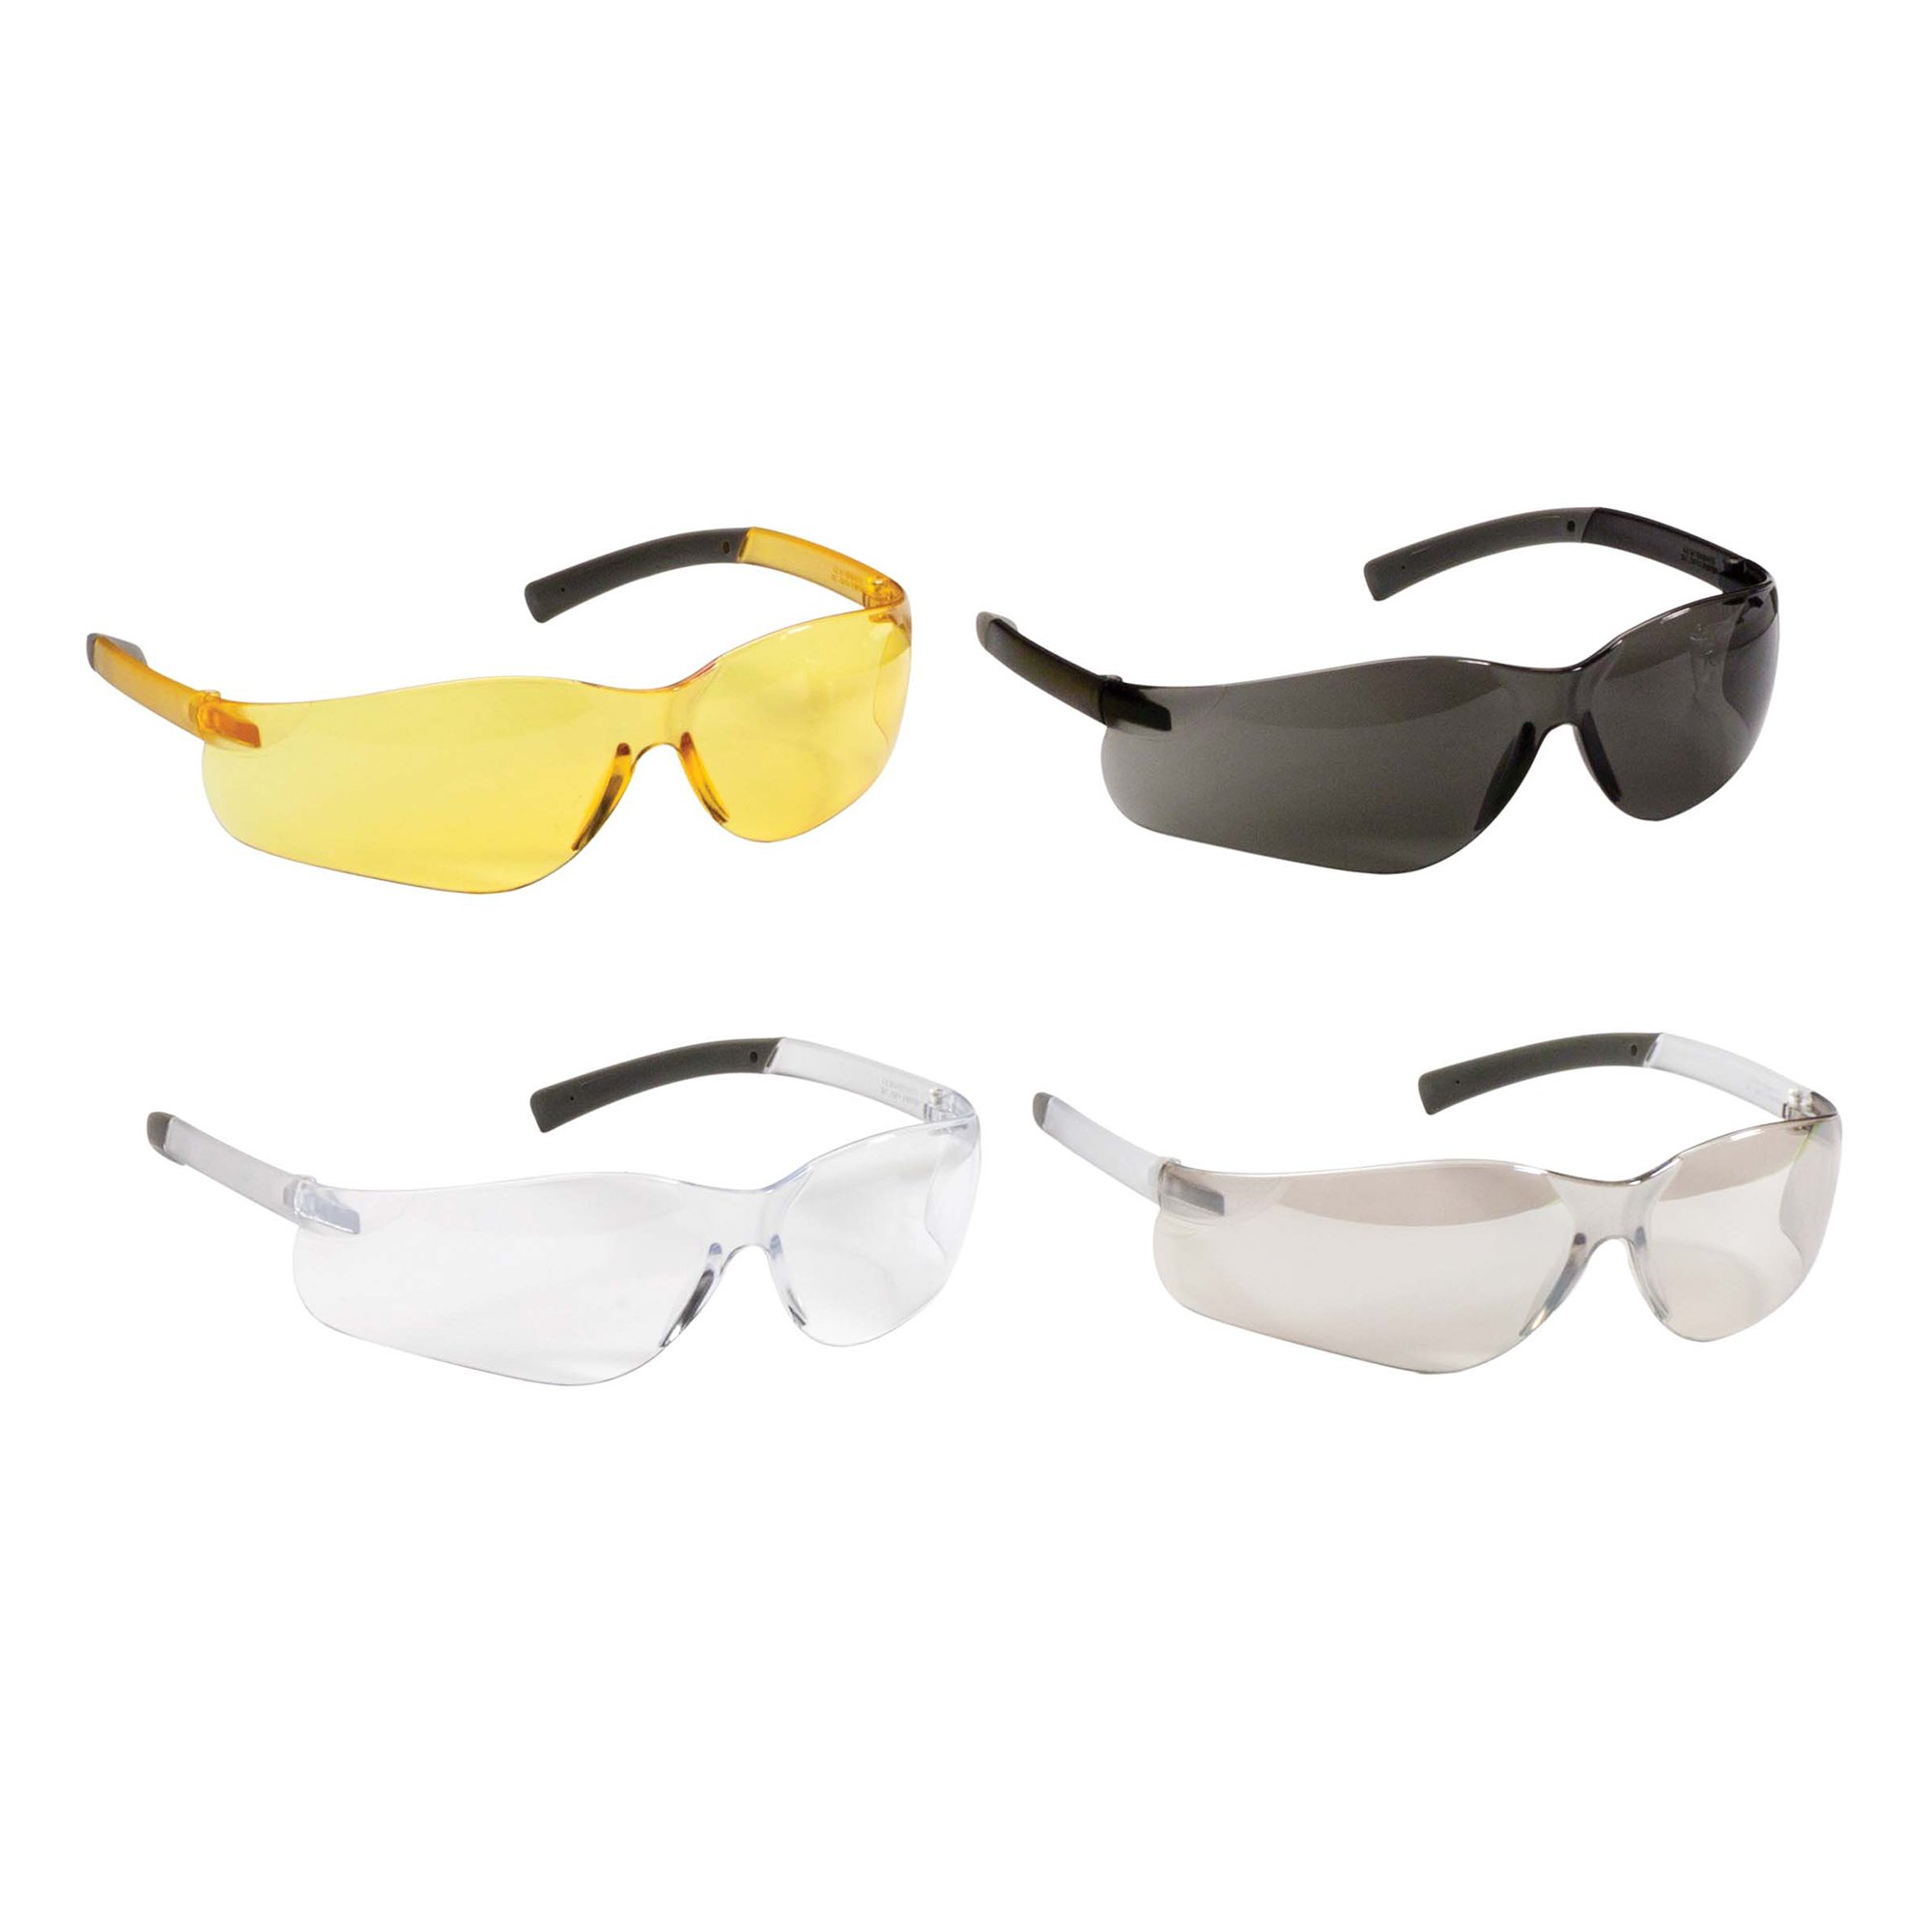 Jackson Safety V20 Purity Safety Glasses (25652), UV Protection, Hardcoated Smoke Lenses with Black Temples, 12 Pairs/Case by Jackson Safety (Image #3)